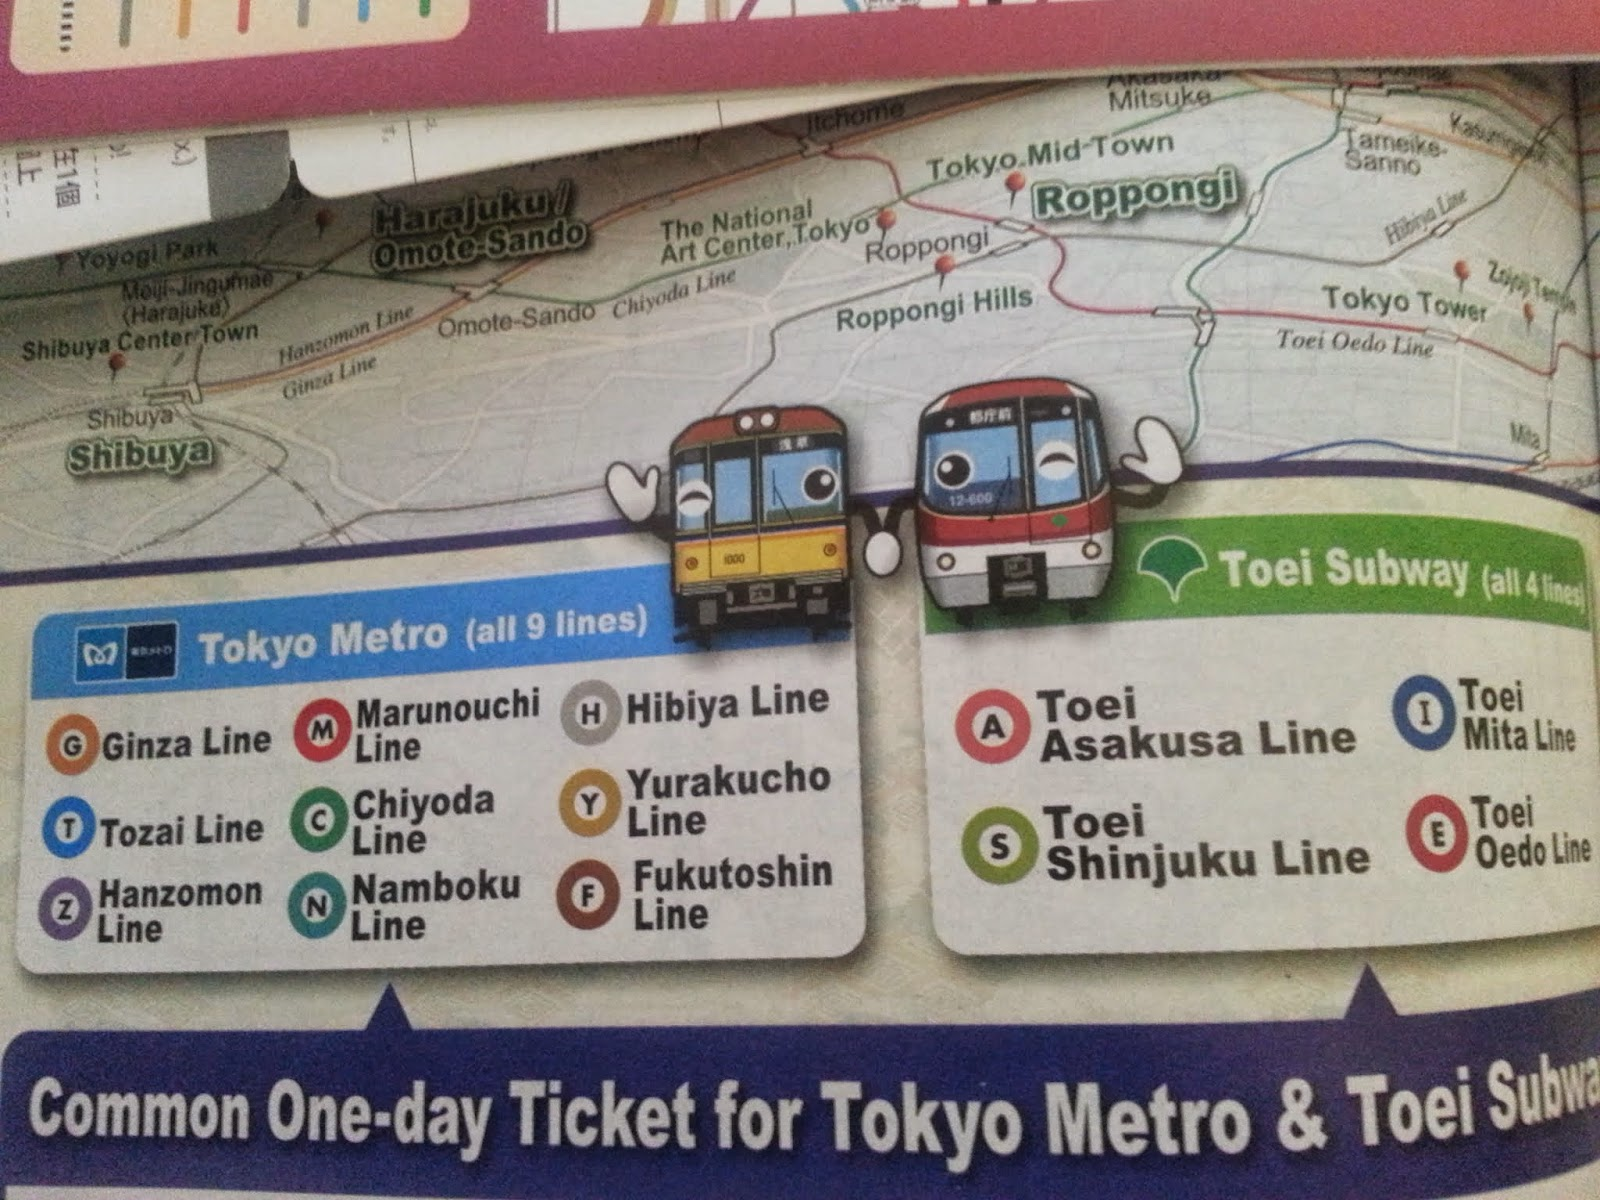 Different colour coded with a letter to represent every subway company followed by a number in an order to show the route of a train in Tokyo, Japan